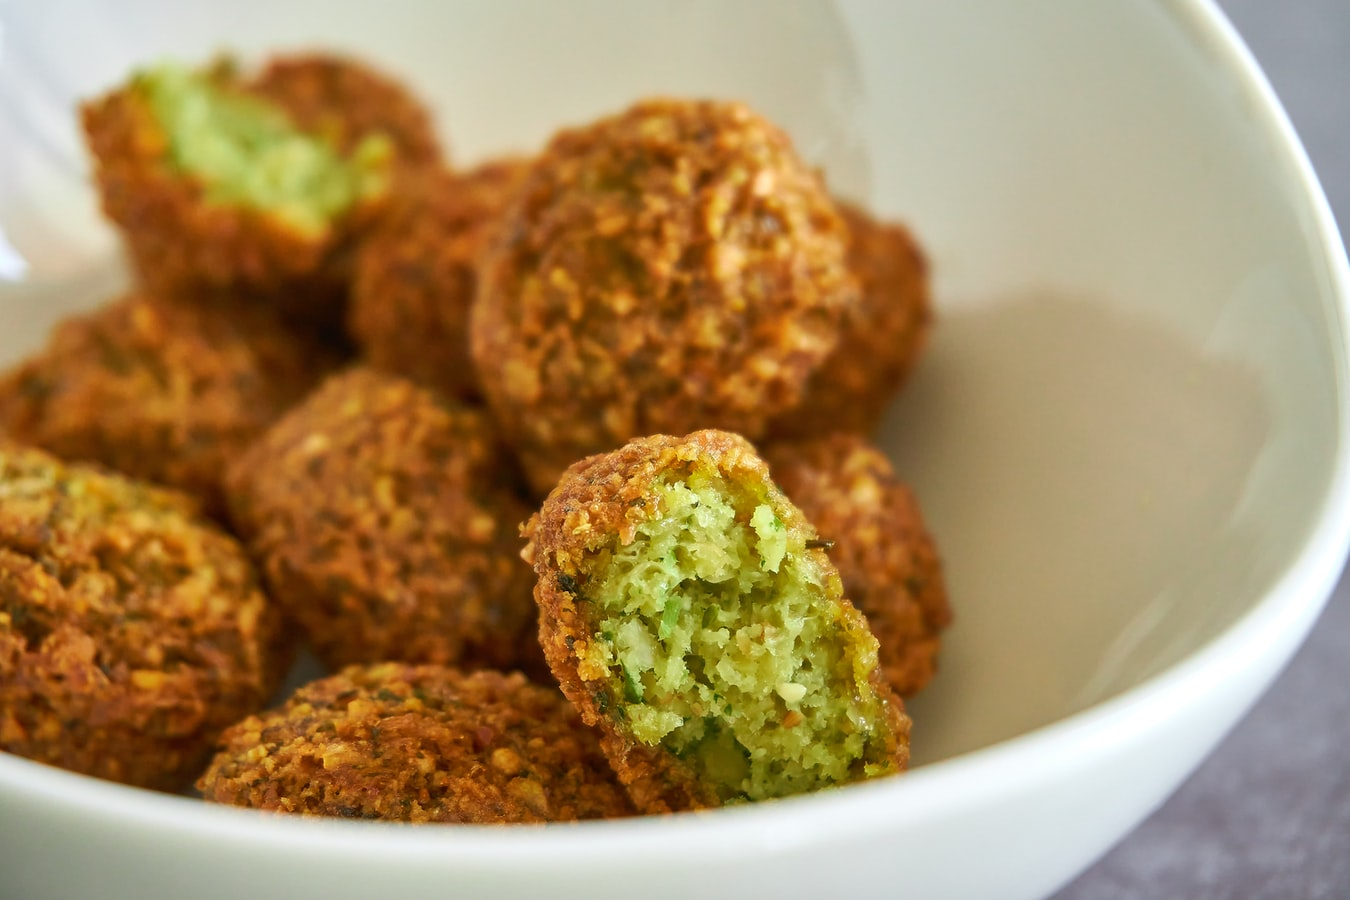 vegan falafel to cook at home, recipe for falafel